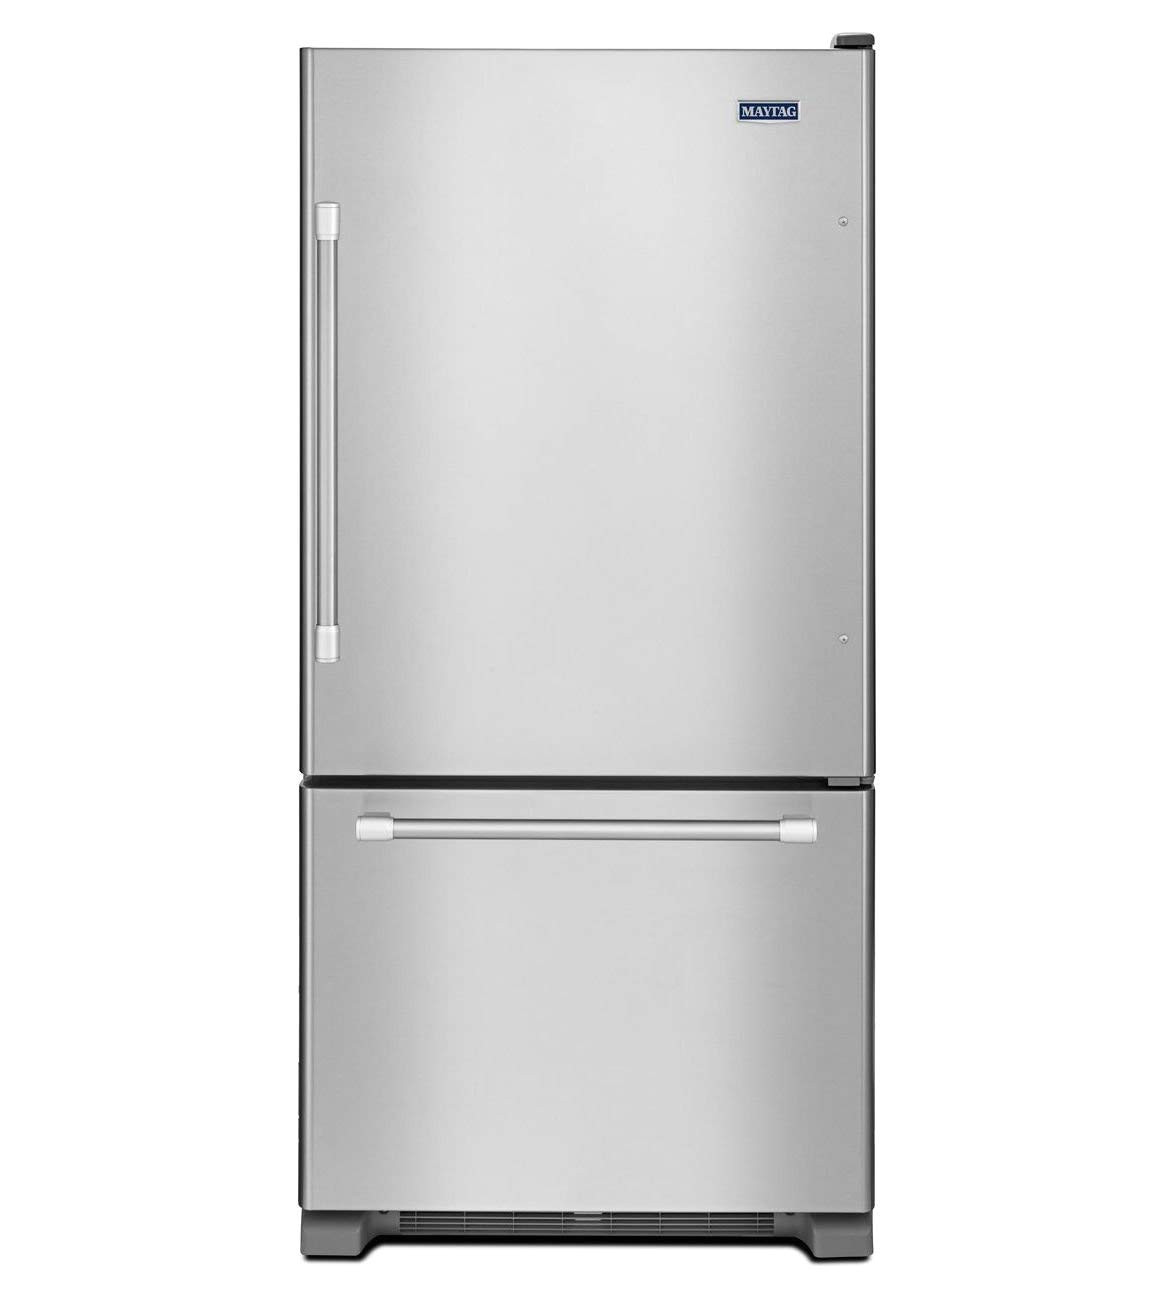 this bottom freezer refrigerator is tough enough to stand up to nearly any kitchen use and boasts strong stainless steel handles and is energy star rated to